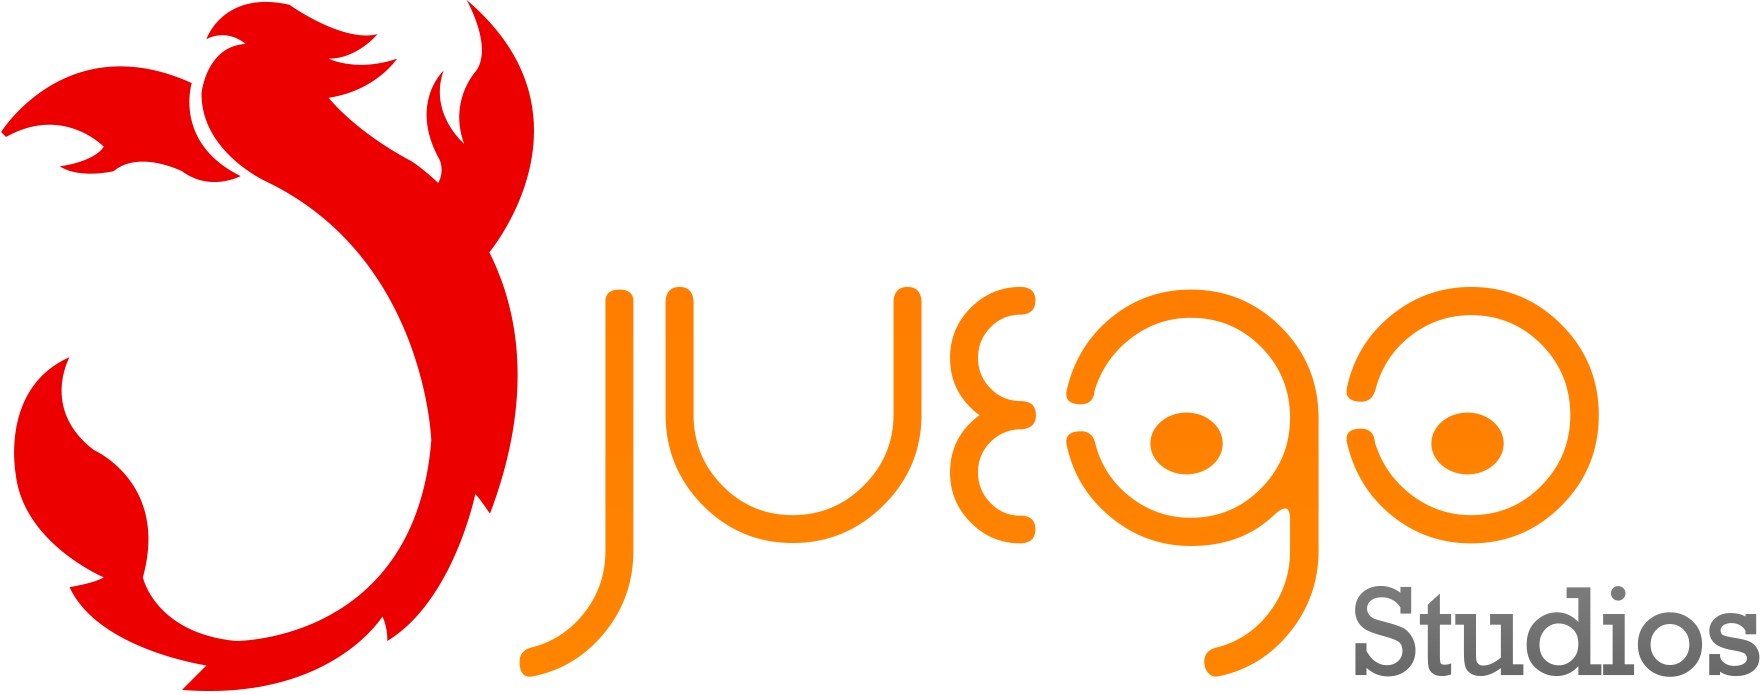 Juego Studios - Game and App Development Company in UAE